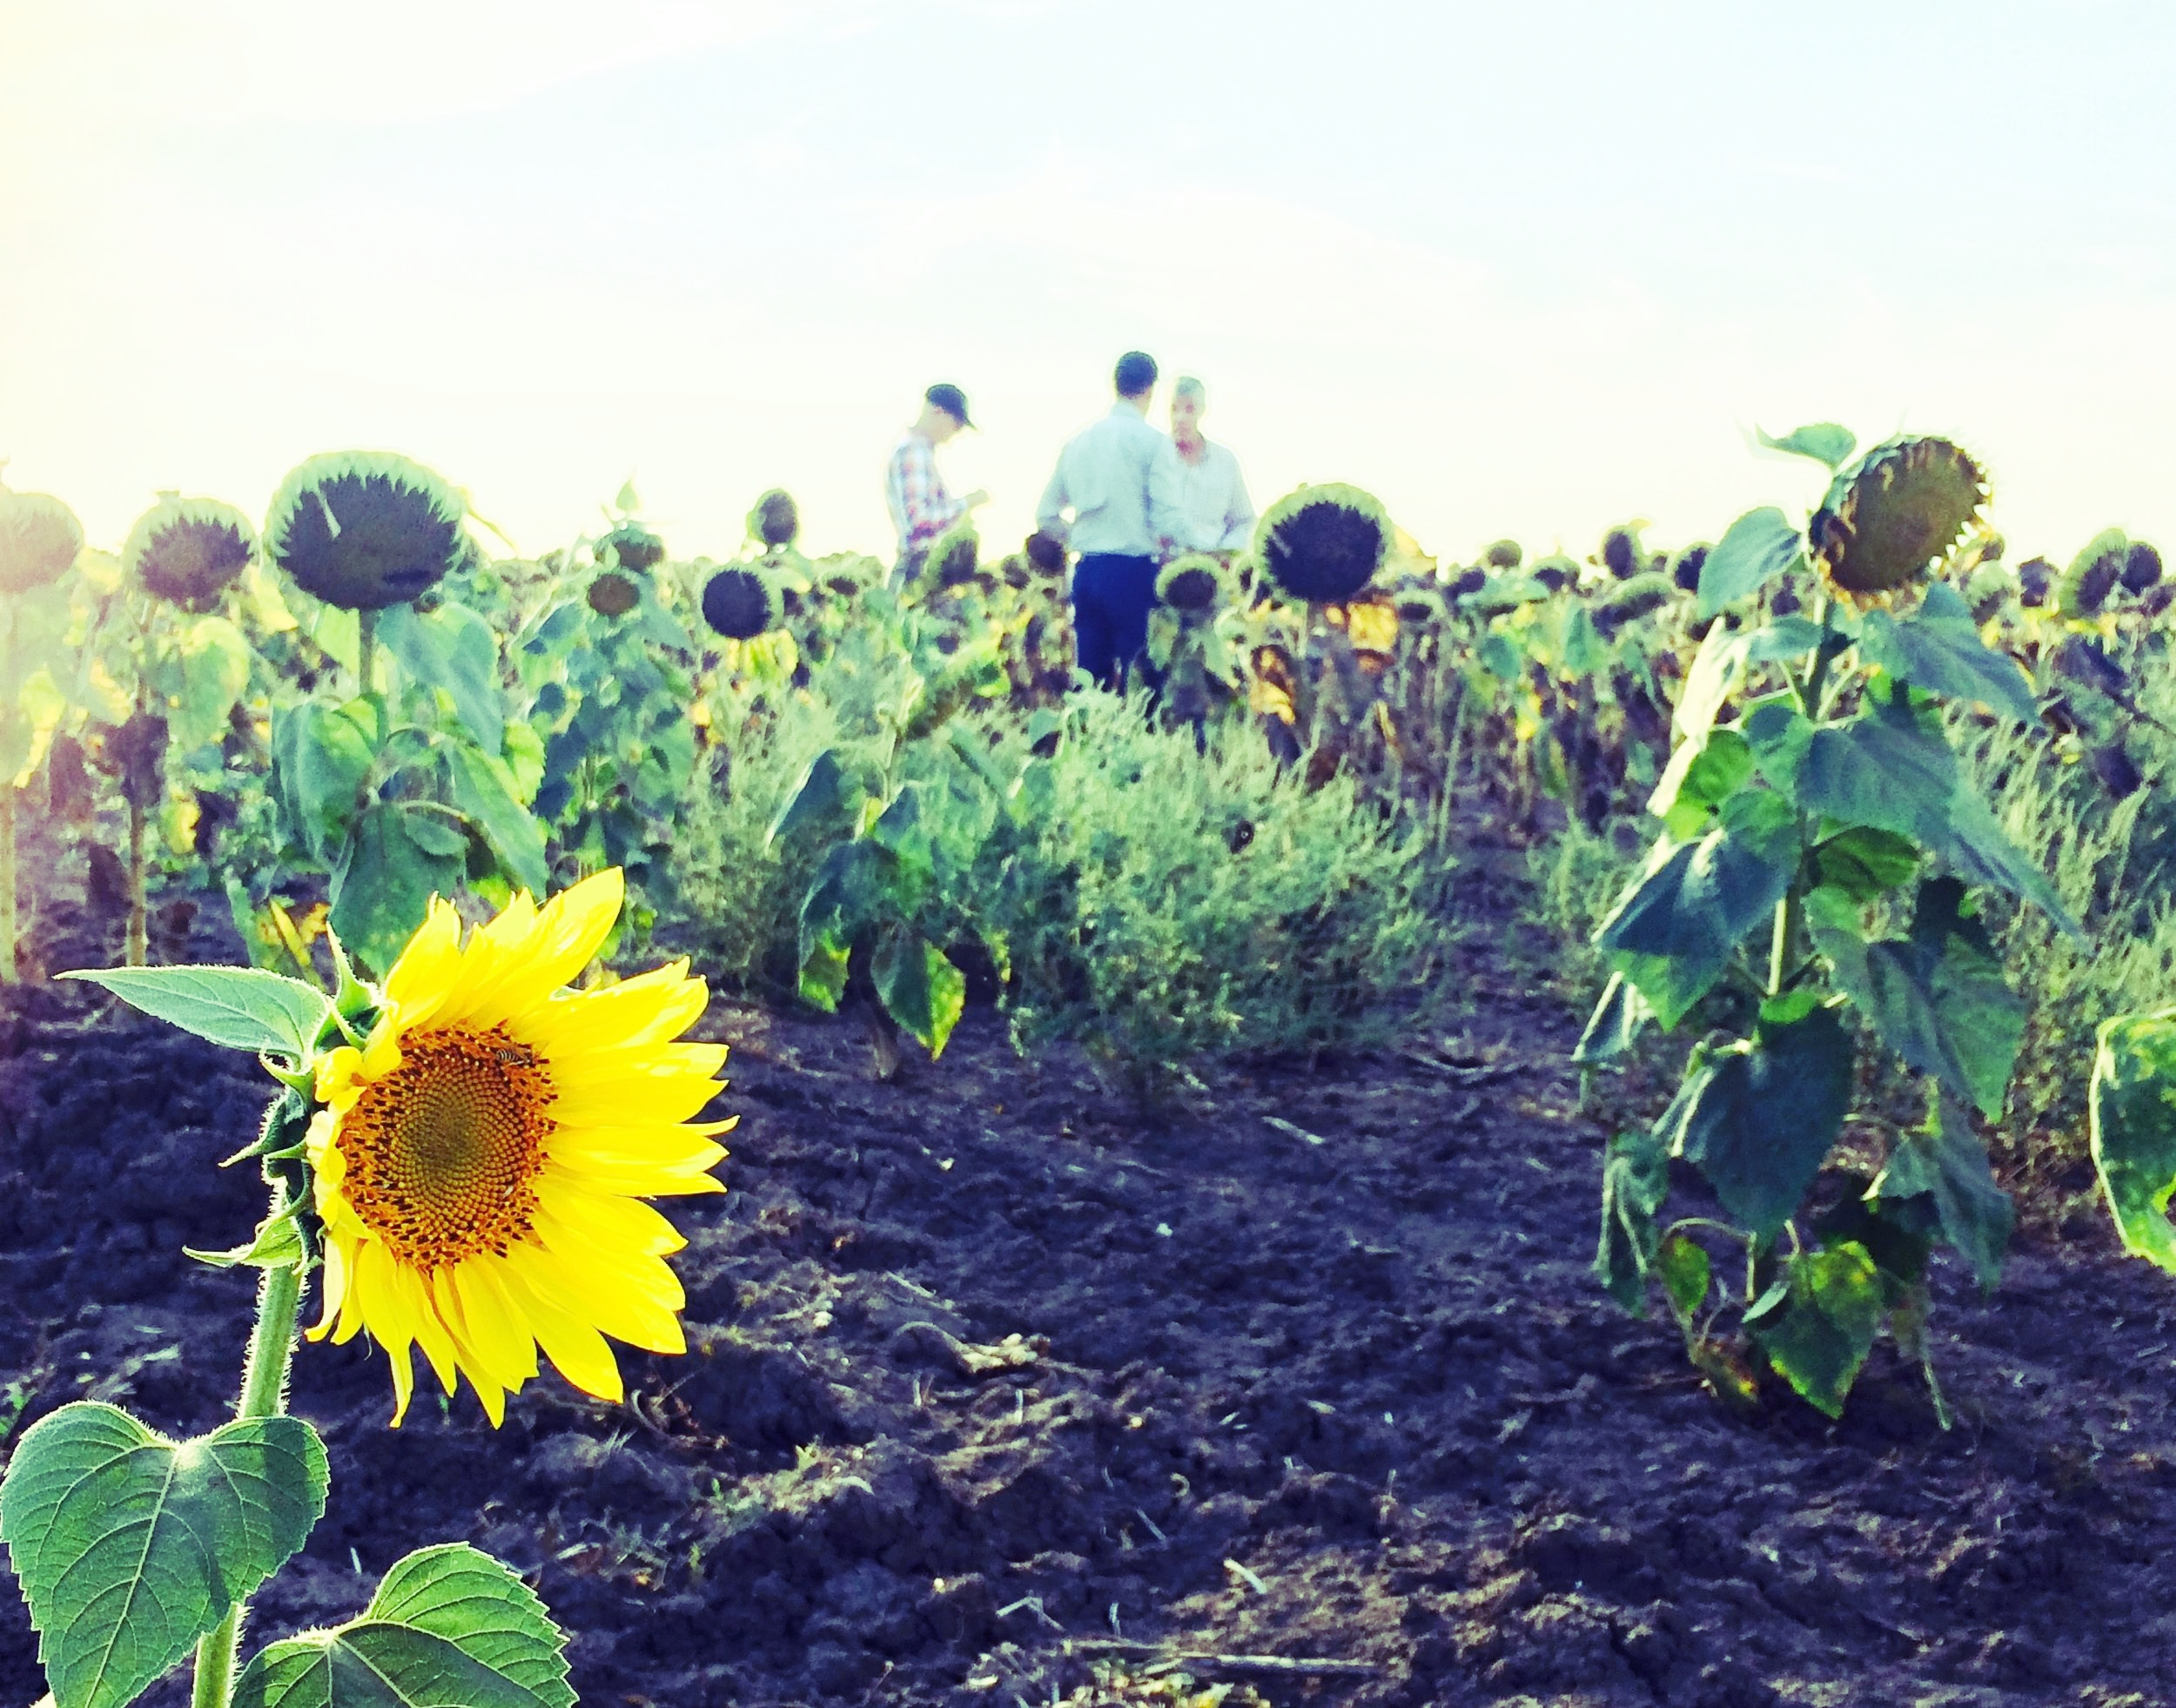 Sunflowers growing in Ukraine's famously black and fertile chernozem soil.